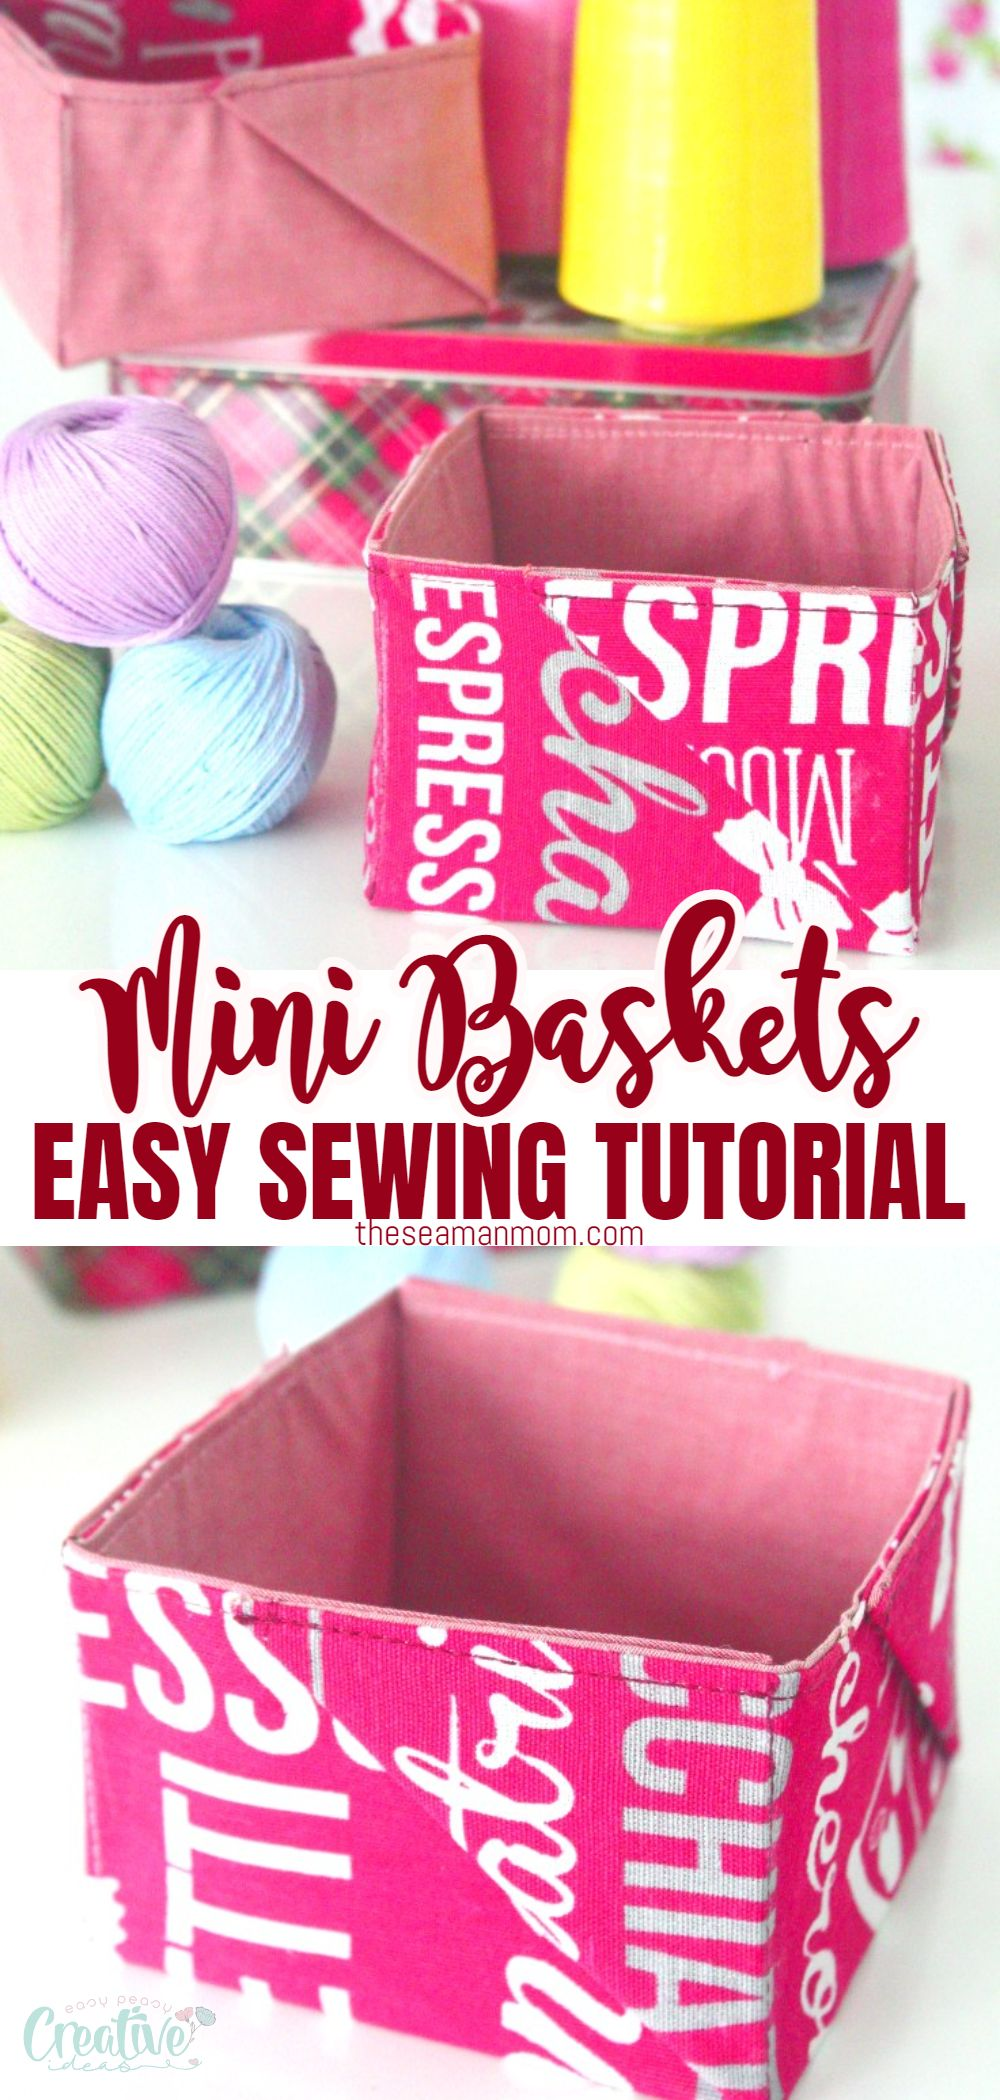 "Everyone needs to organize various items around the house, so we're in constant need of boxes, baskets, bags or any other storing solution. Today I'm going to show you a fabulous fabric baskets tutorial where I make super cute and easy mini ""pinwheel"" baskets with fabric, to store smaller stuff like sewing notions or makeup, small toys, hair accessories etc. via @petroneagu"